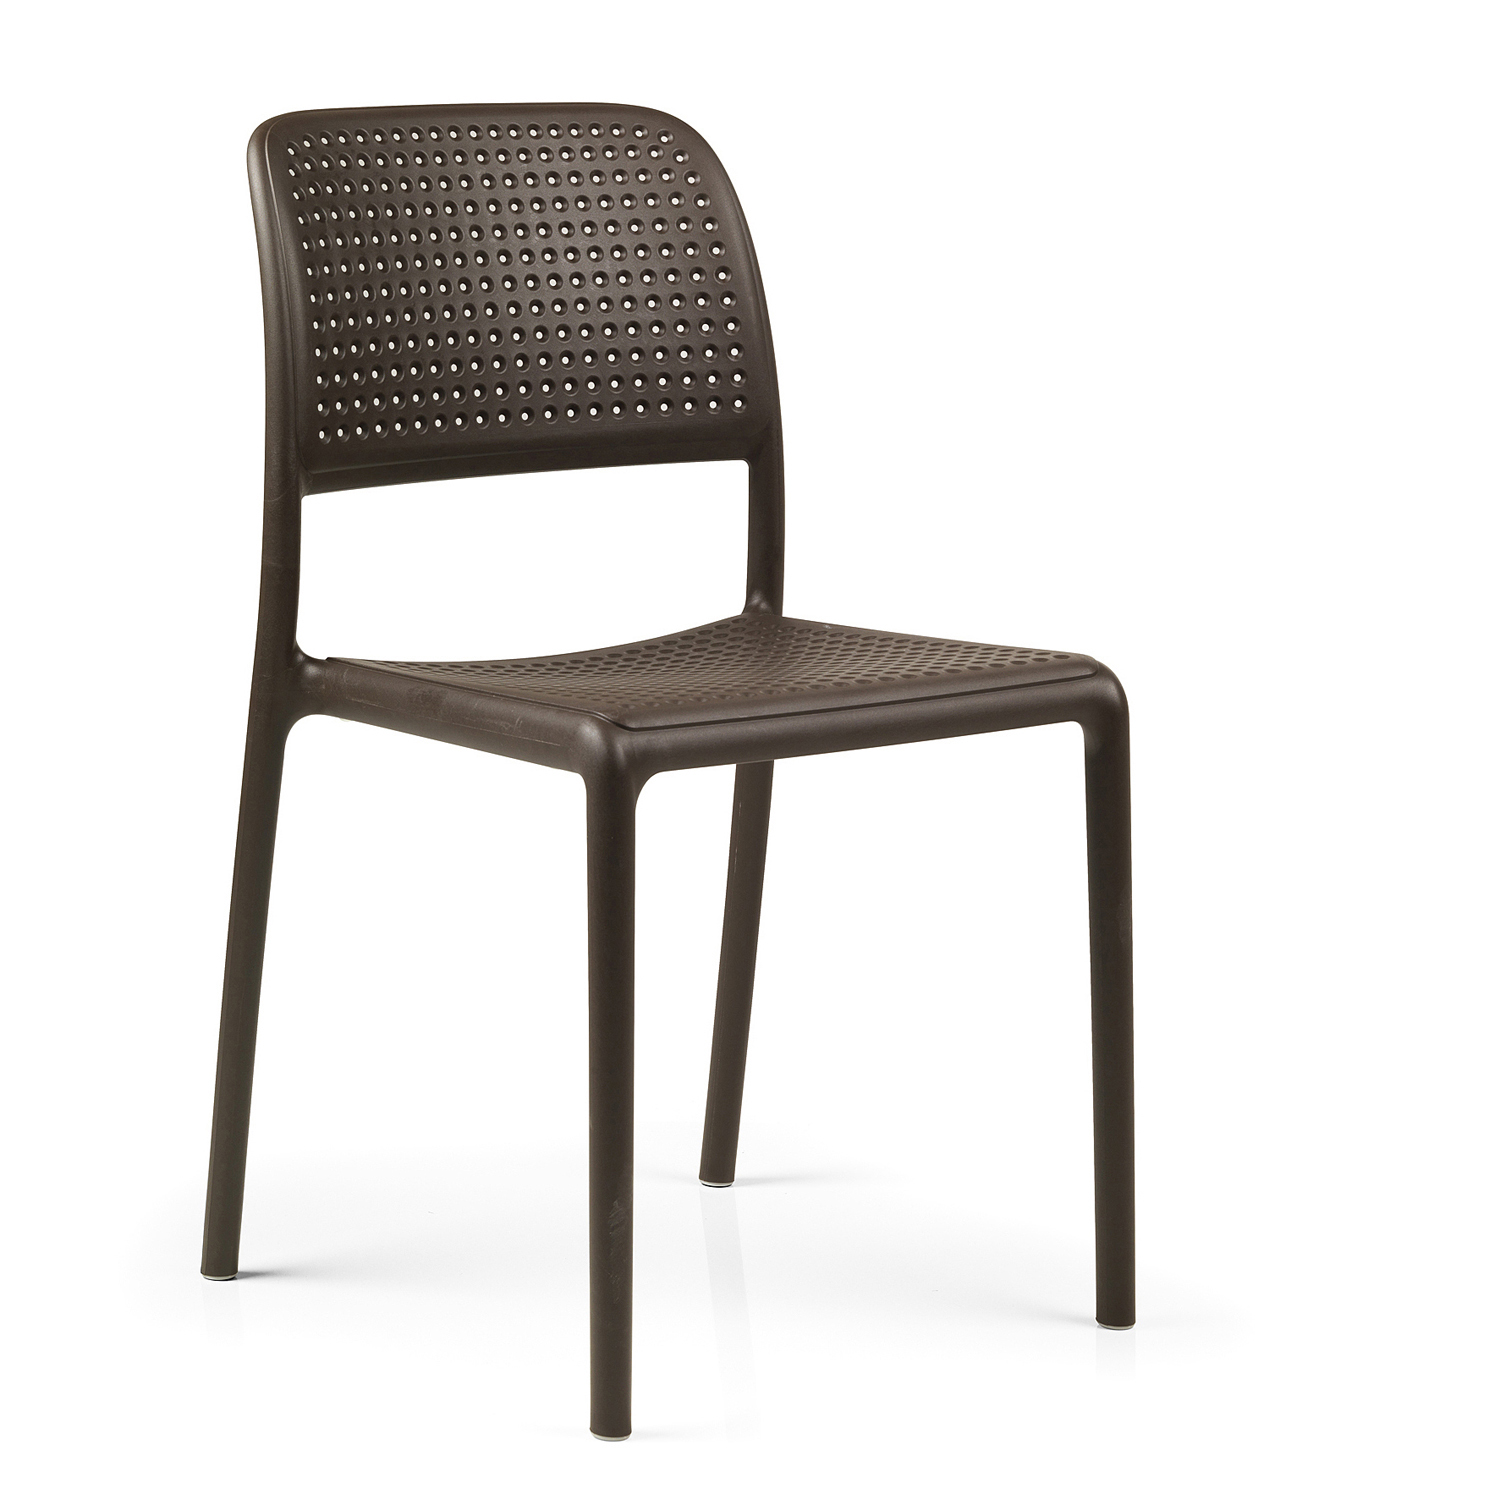 Bistrot chair - Coffee